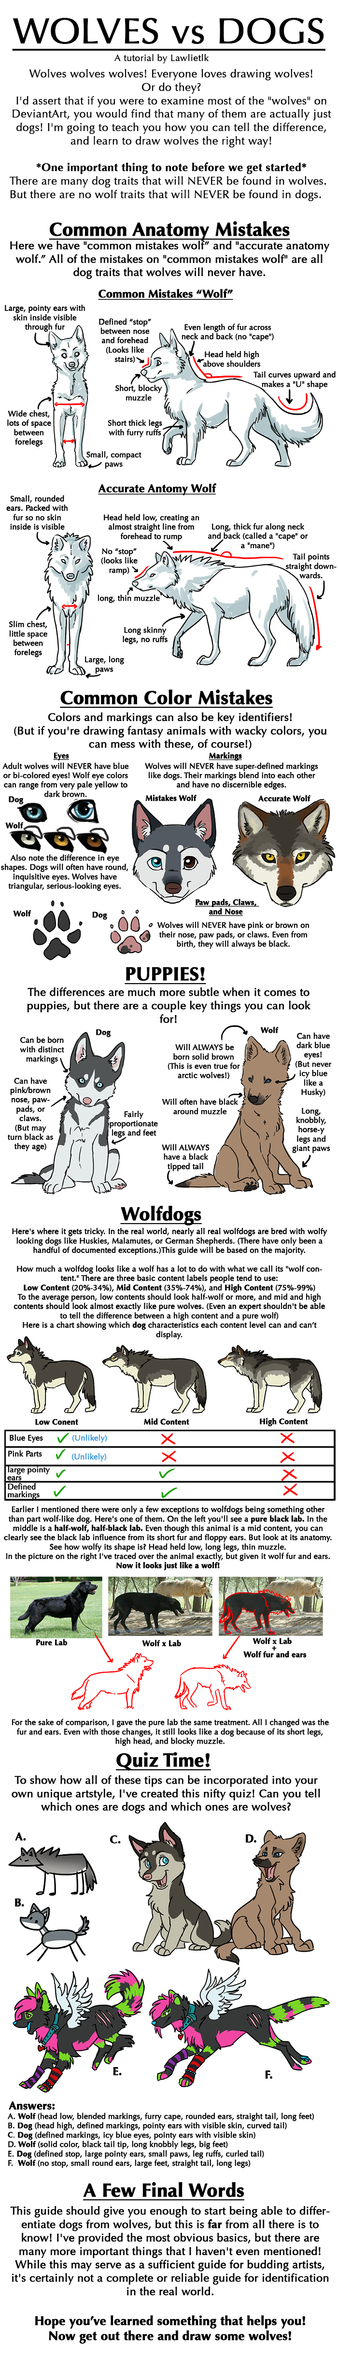 Wolves vs dogs tutorial by lawlietlk on deviantart wolves vs dogs tutorial by lawlietlk nvjuhfo Images